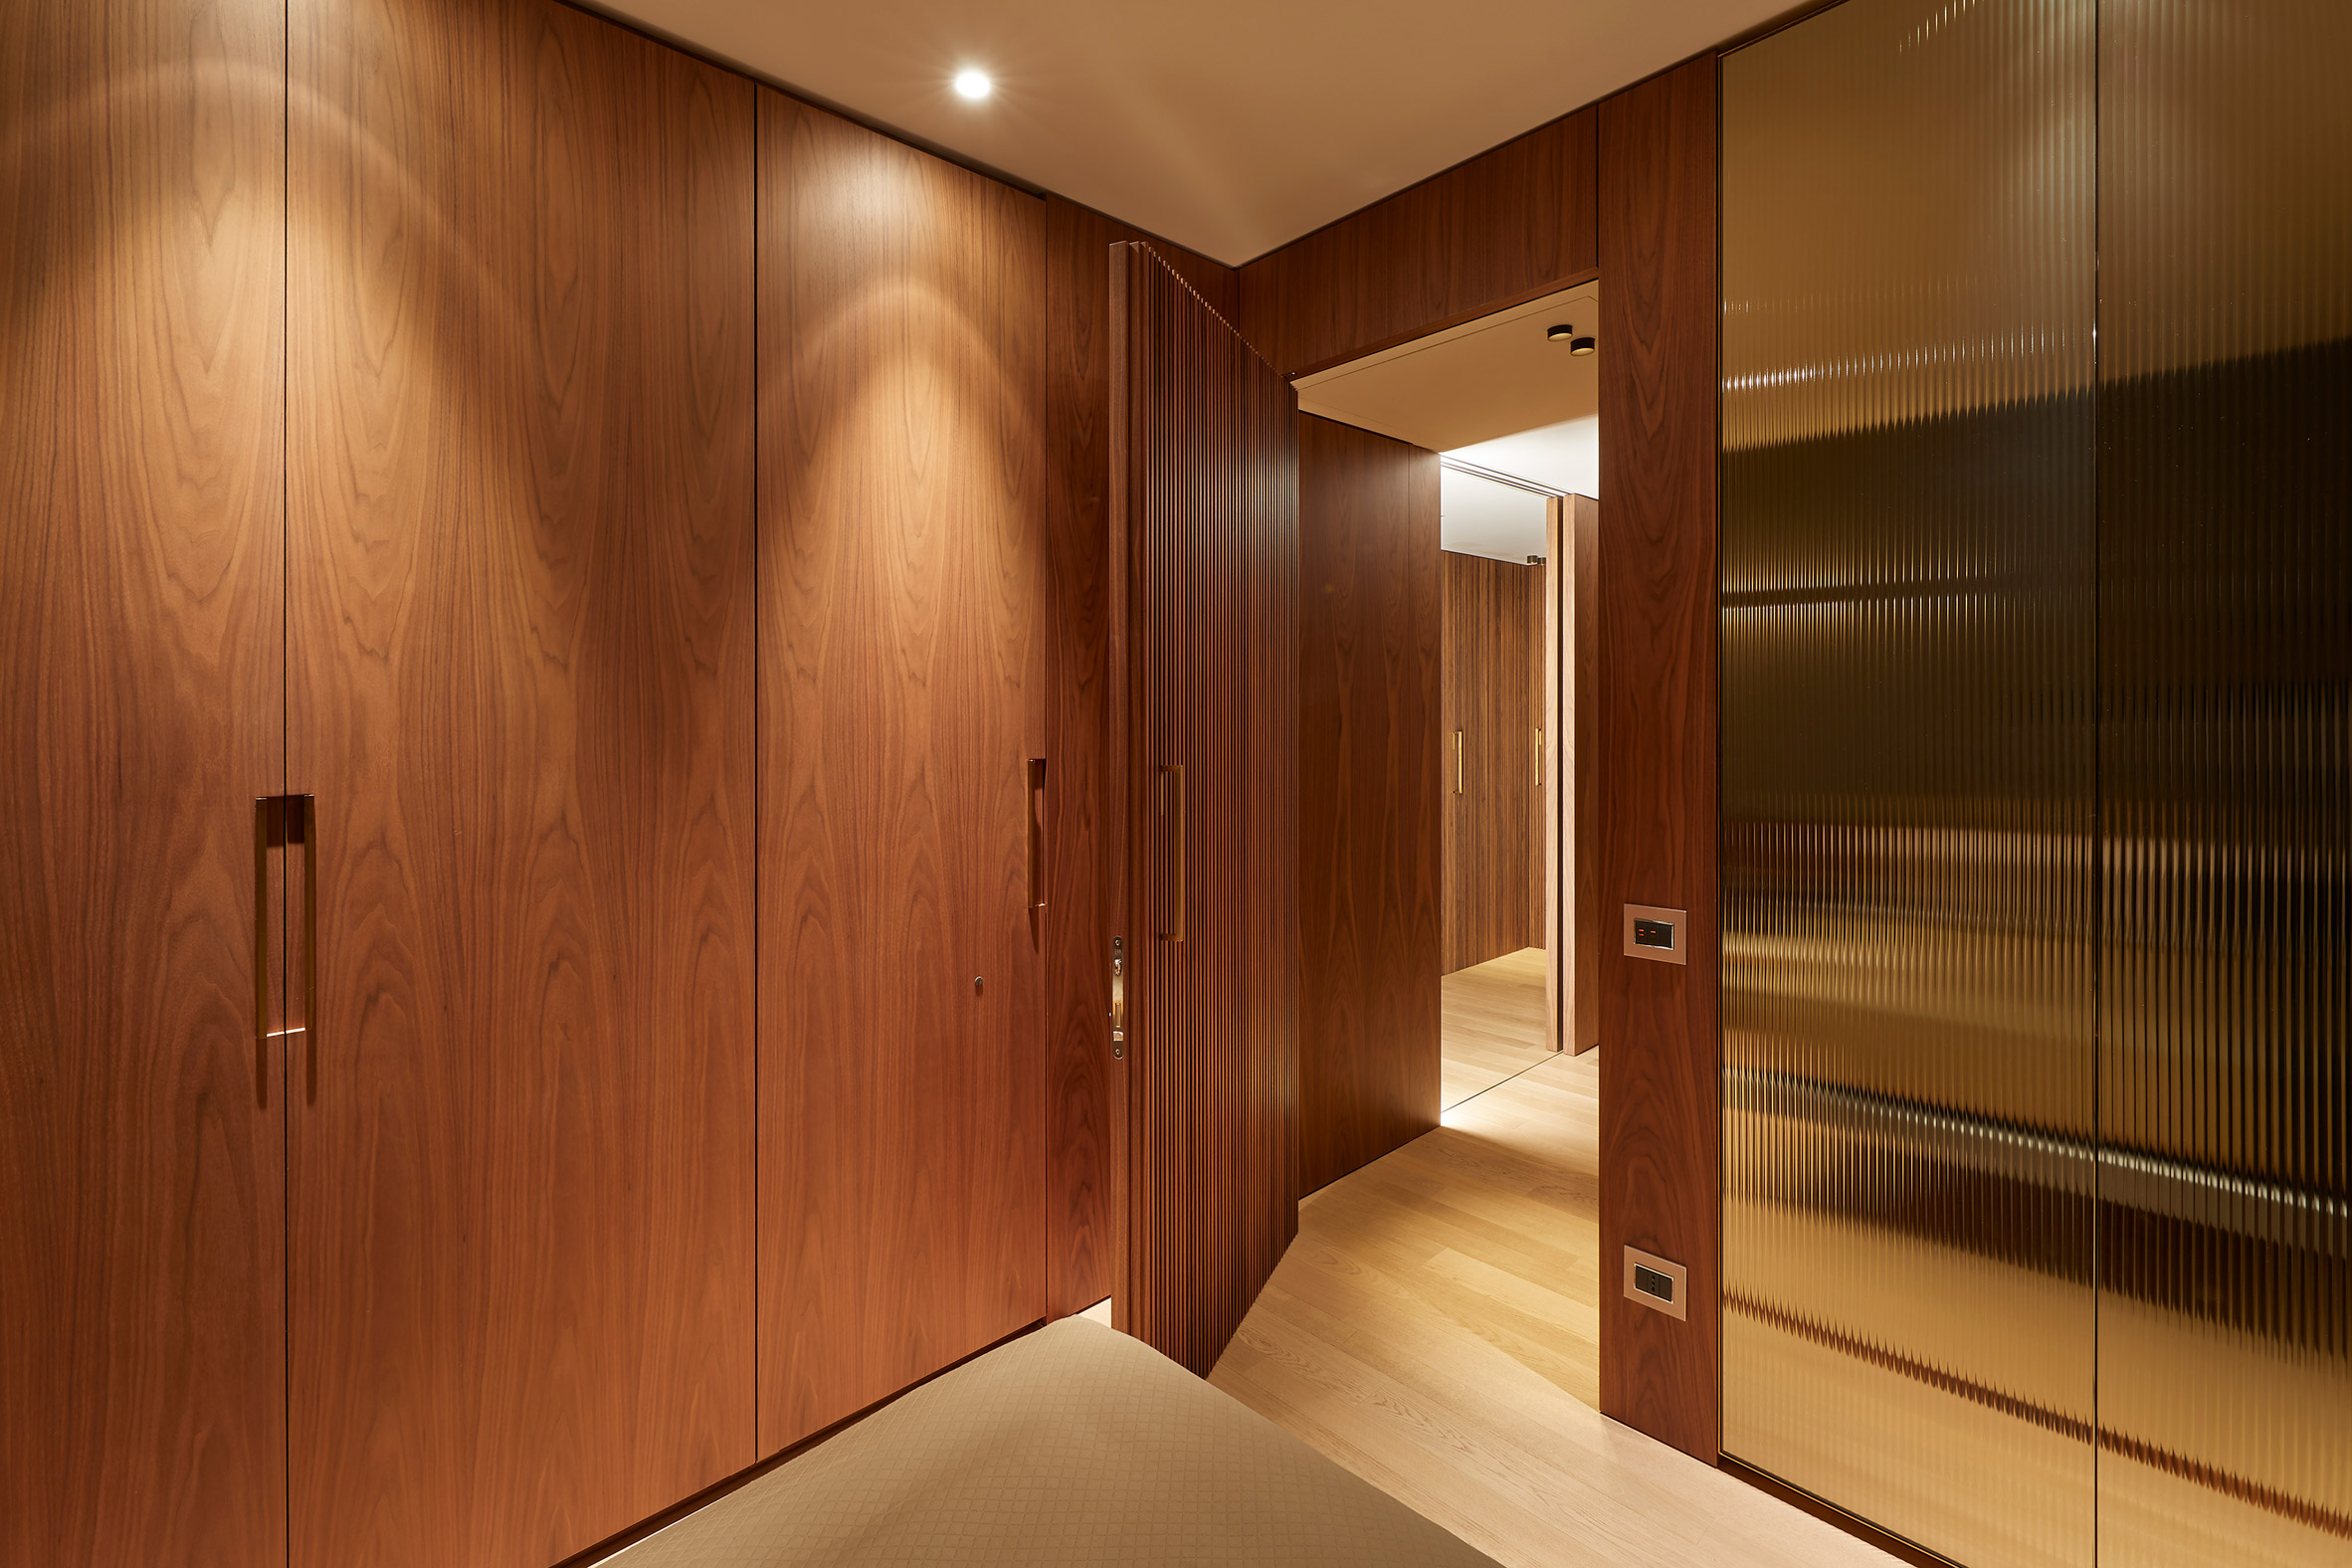 Interior of Milan apartment with wood panelling